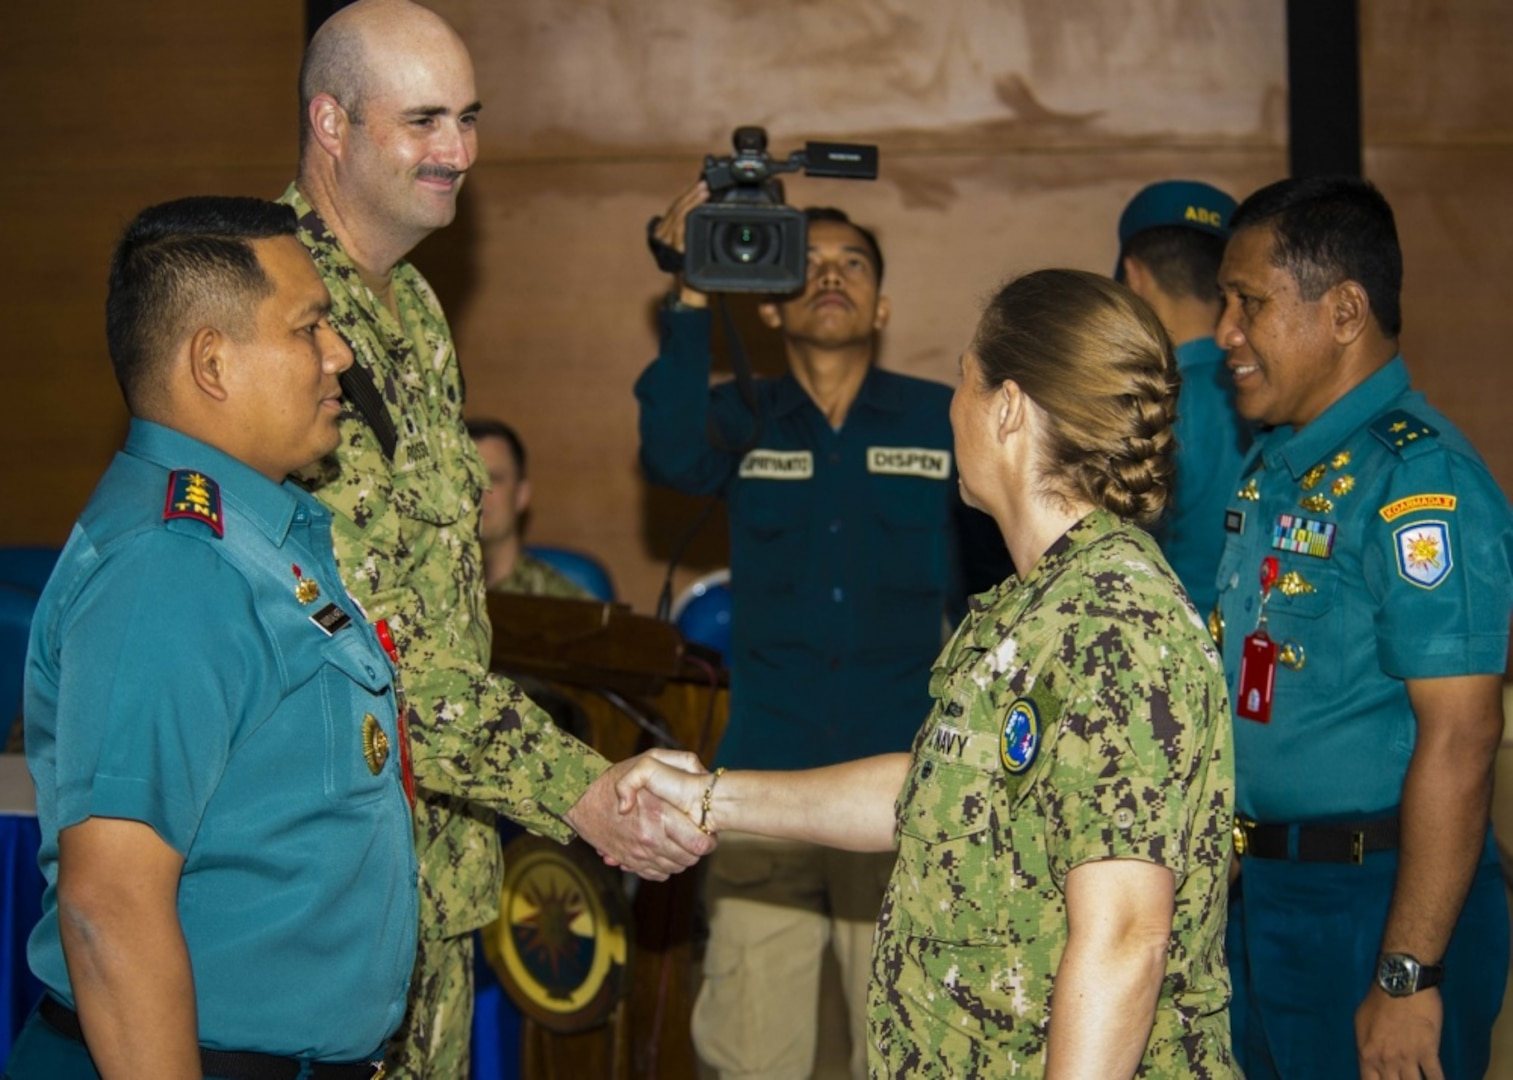 JAVA SEA (August 7, 2019) Senior U.S. and Indonesian Navy delegations formerly greet each other during the closing ceremony of Cooperation Afloat Readiness and Training (CARAT) Indonesia 2019. CARAT, the U.S. Navy's longest running regional exercise in South and Southeast Asia, strengthens partnerships between regional navies and enhances maritime security cooperation throughout the Indo-Pacific.